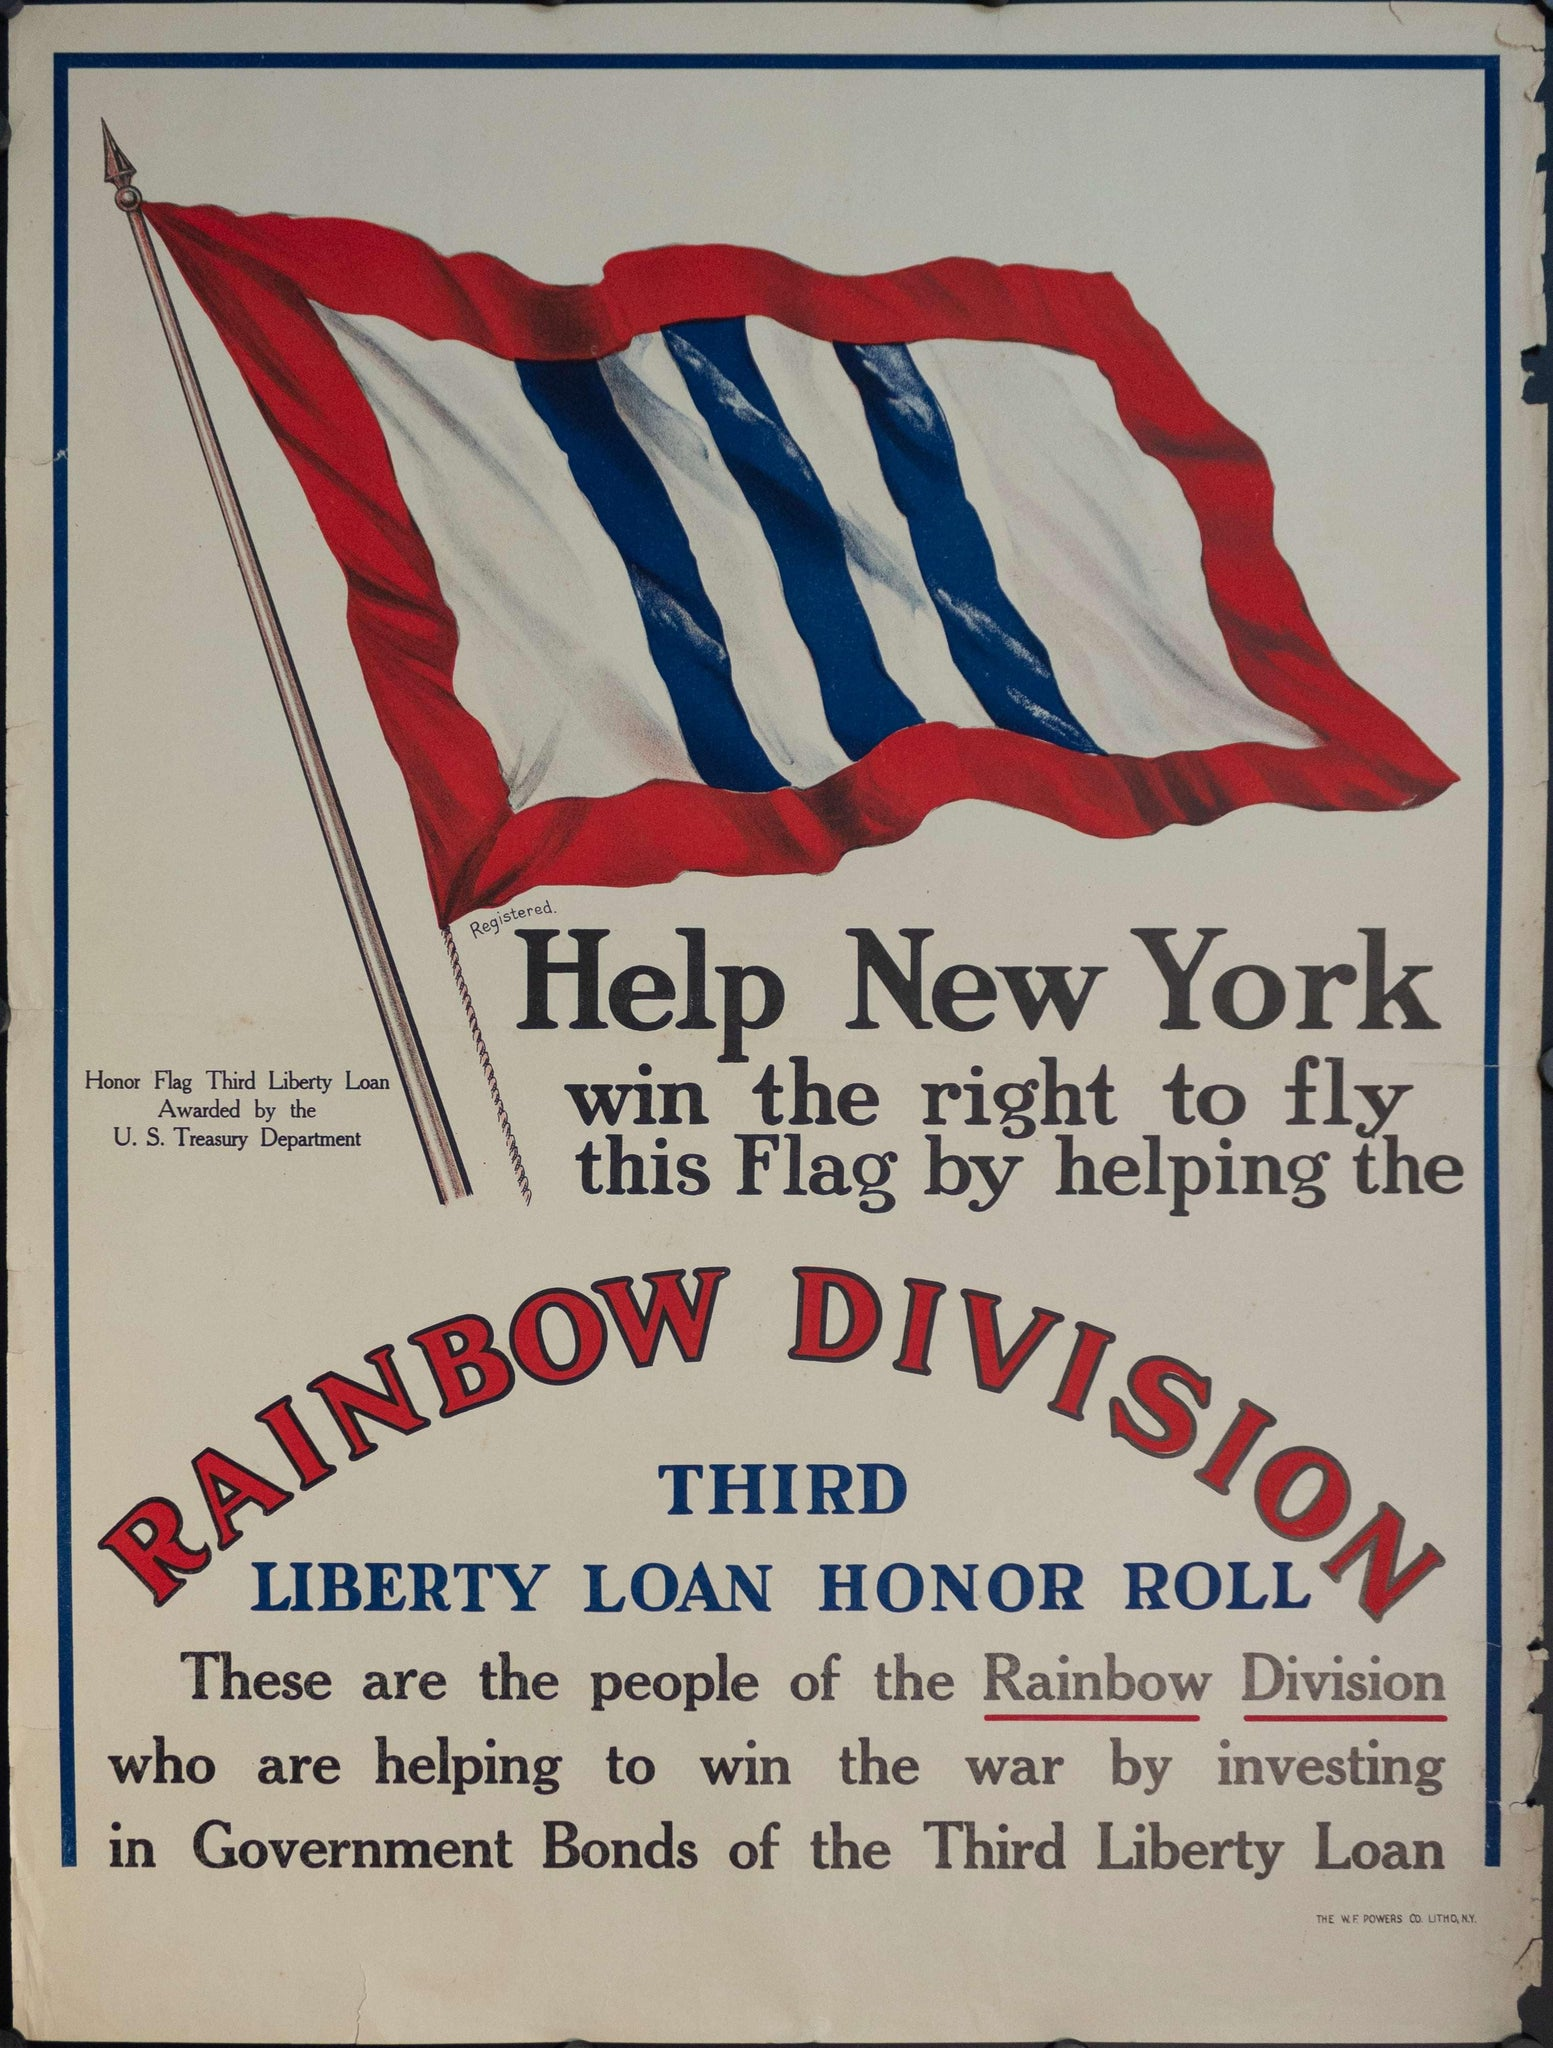 1917 Help New York Win the Right to Fly This Flag by Helping the Rainbow Division